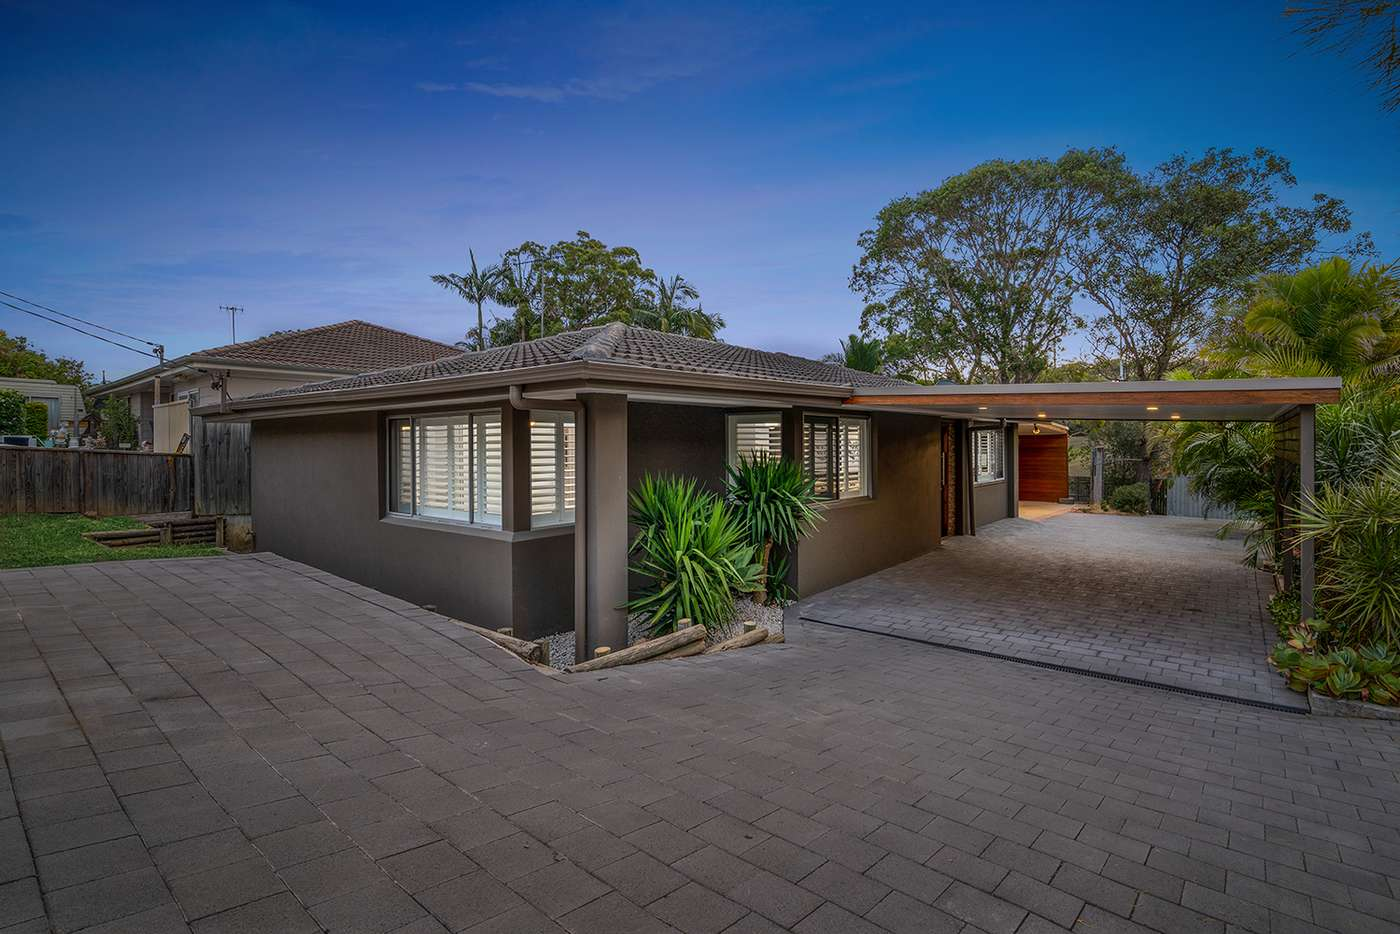 Main view of Homely house listing, 30 Thomas Mitchell Road, Killarney Vale NSW 2261